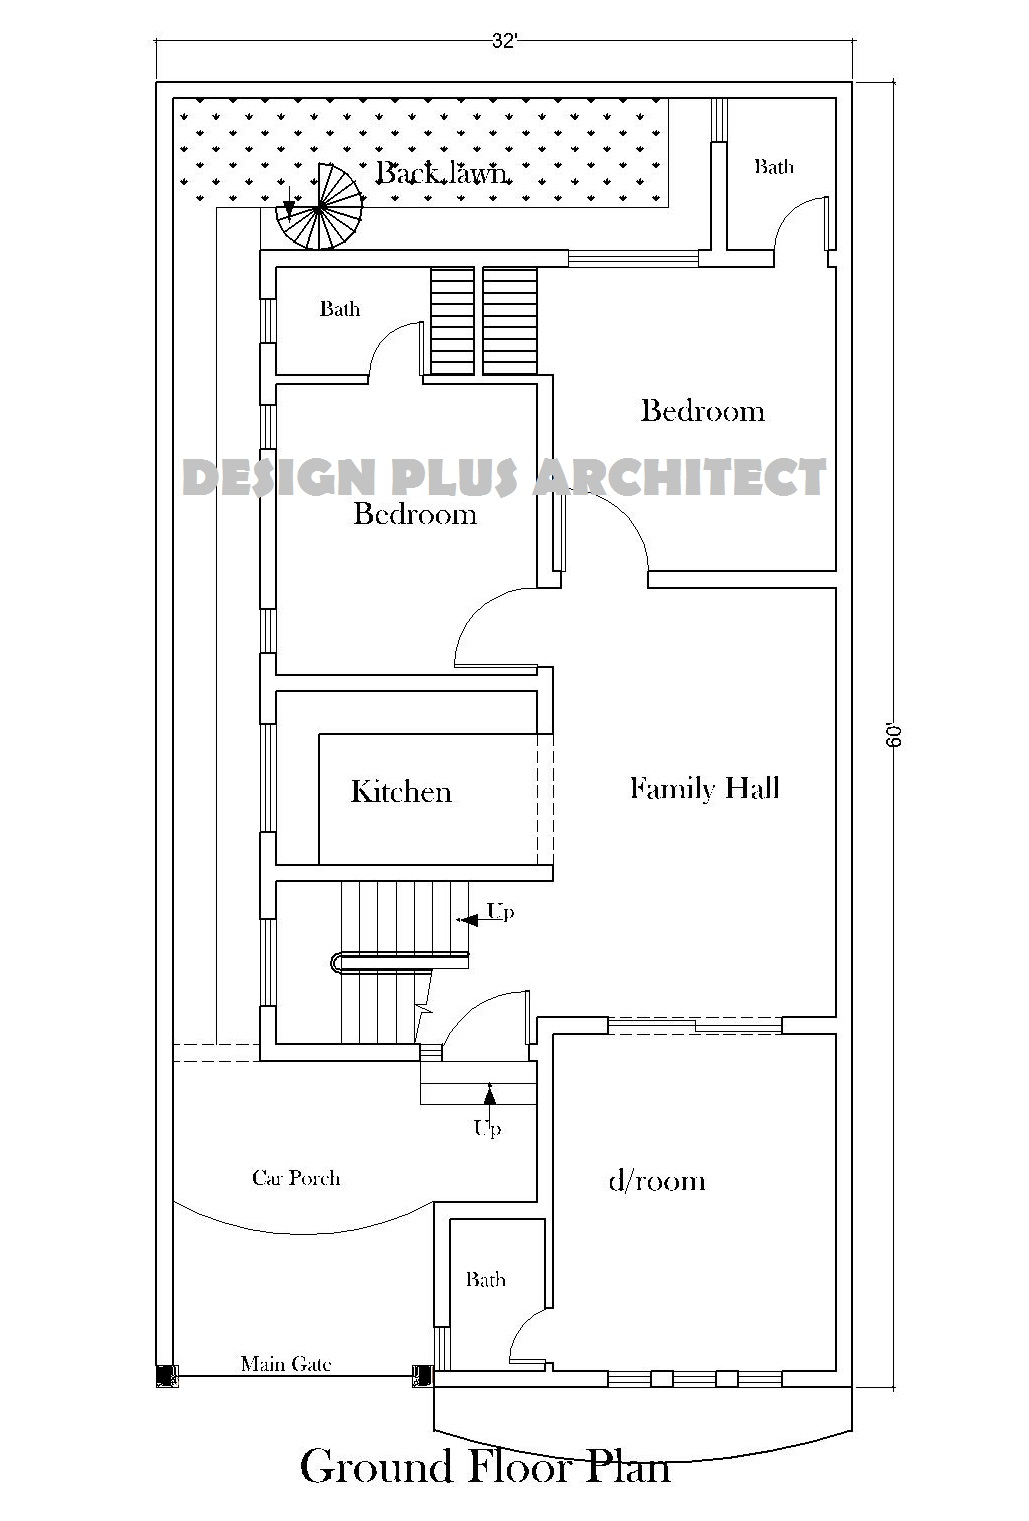 Home plans in pakistan home decor architect designer for Home plan architect